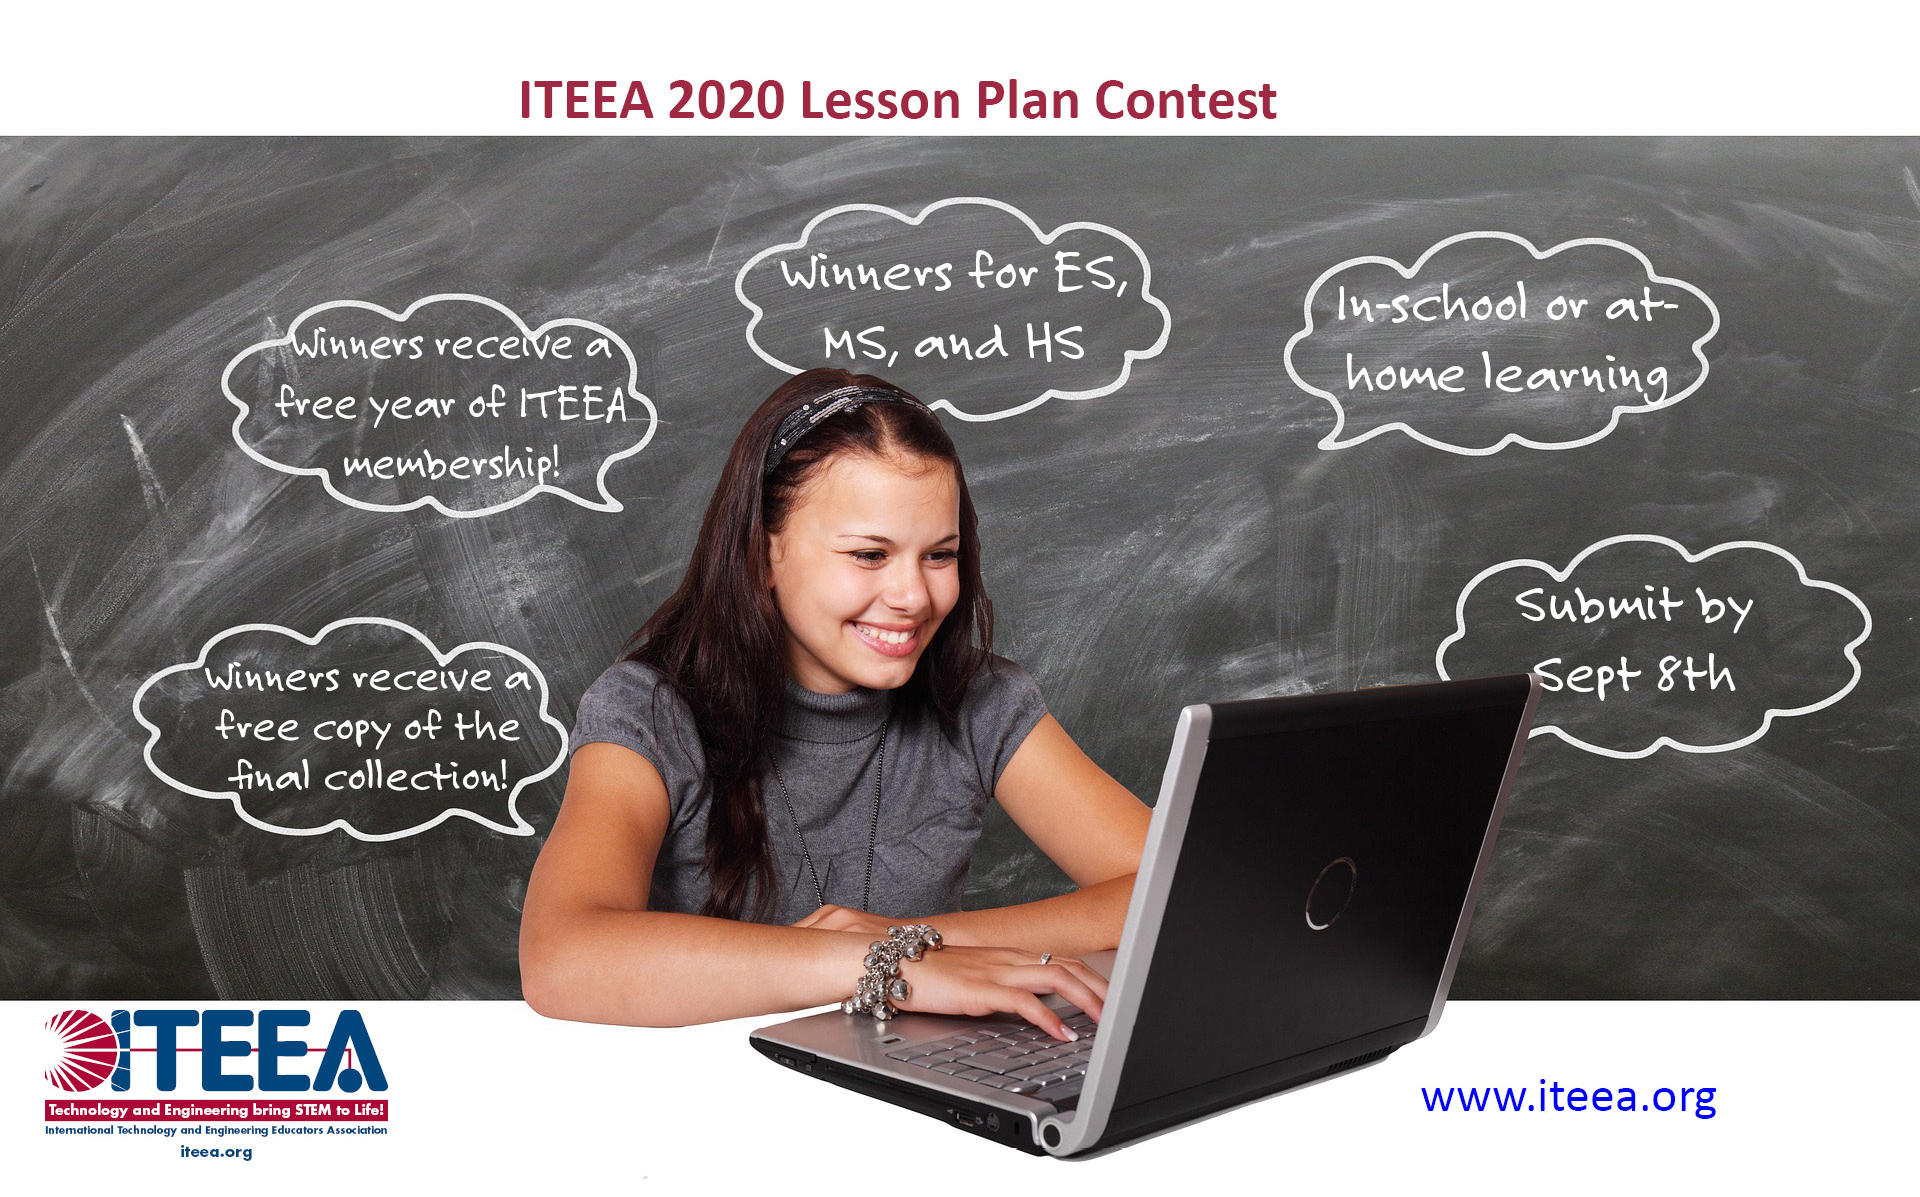 ITEEA 2020 Lesson Plan Contest: Now Open!